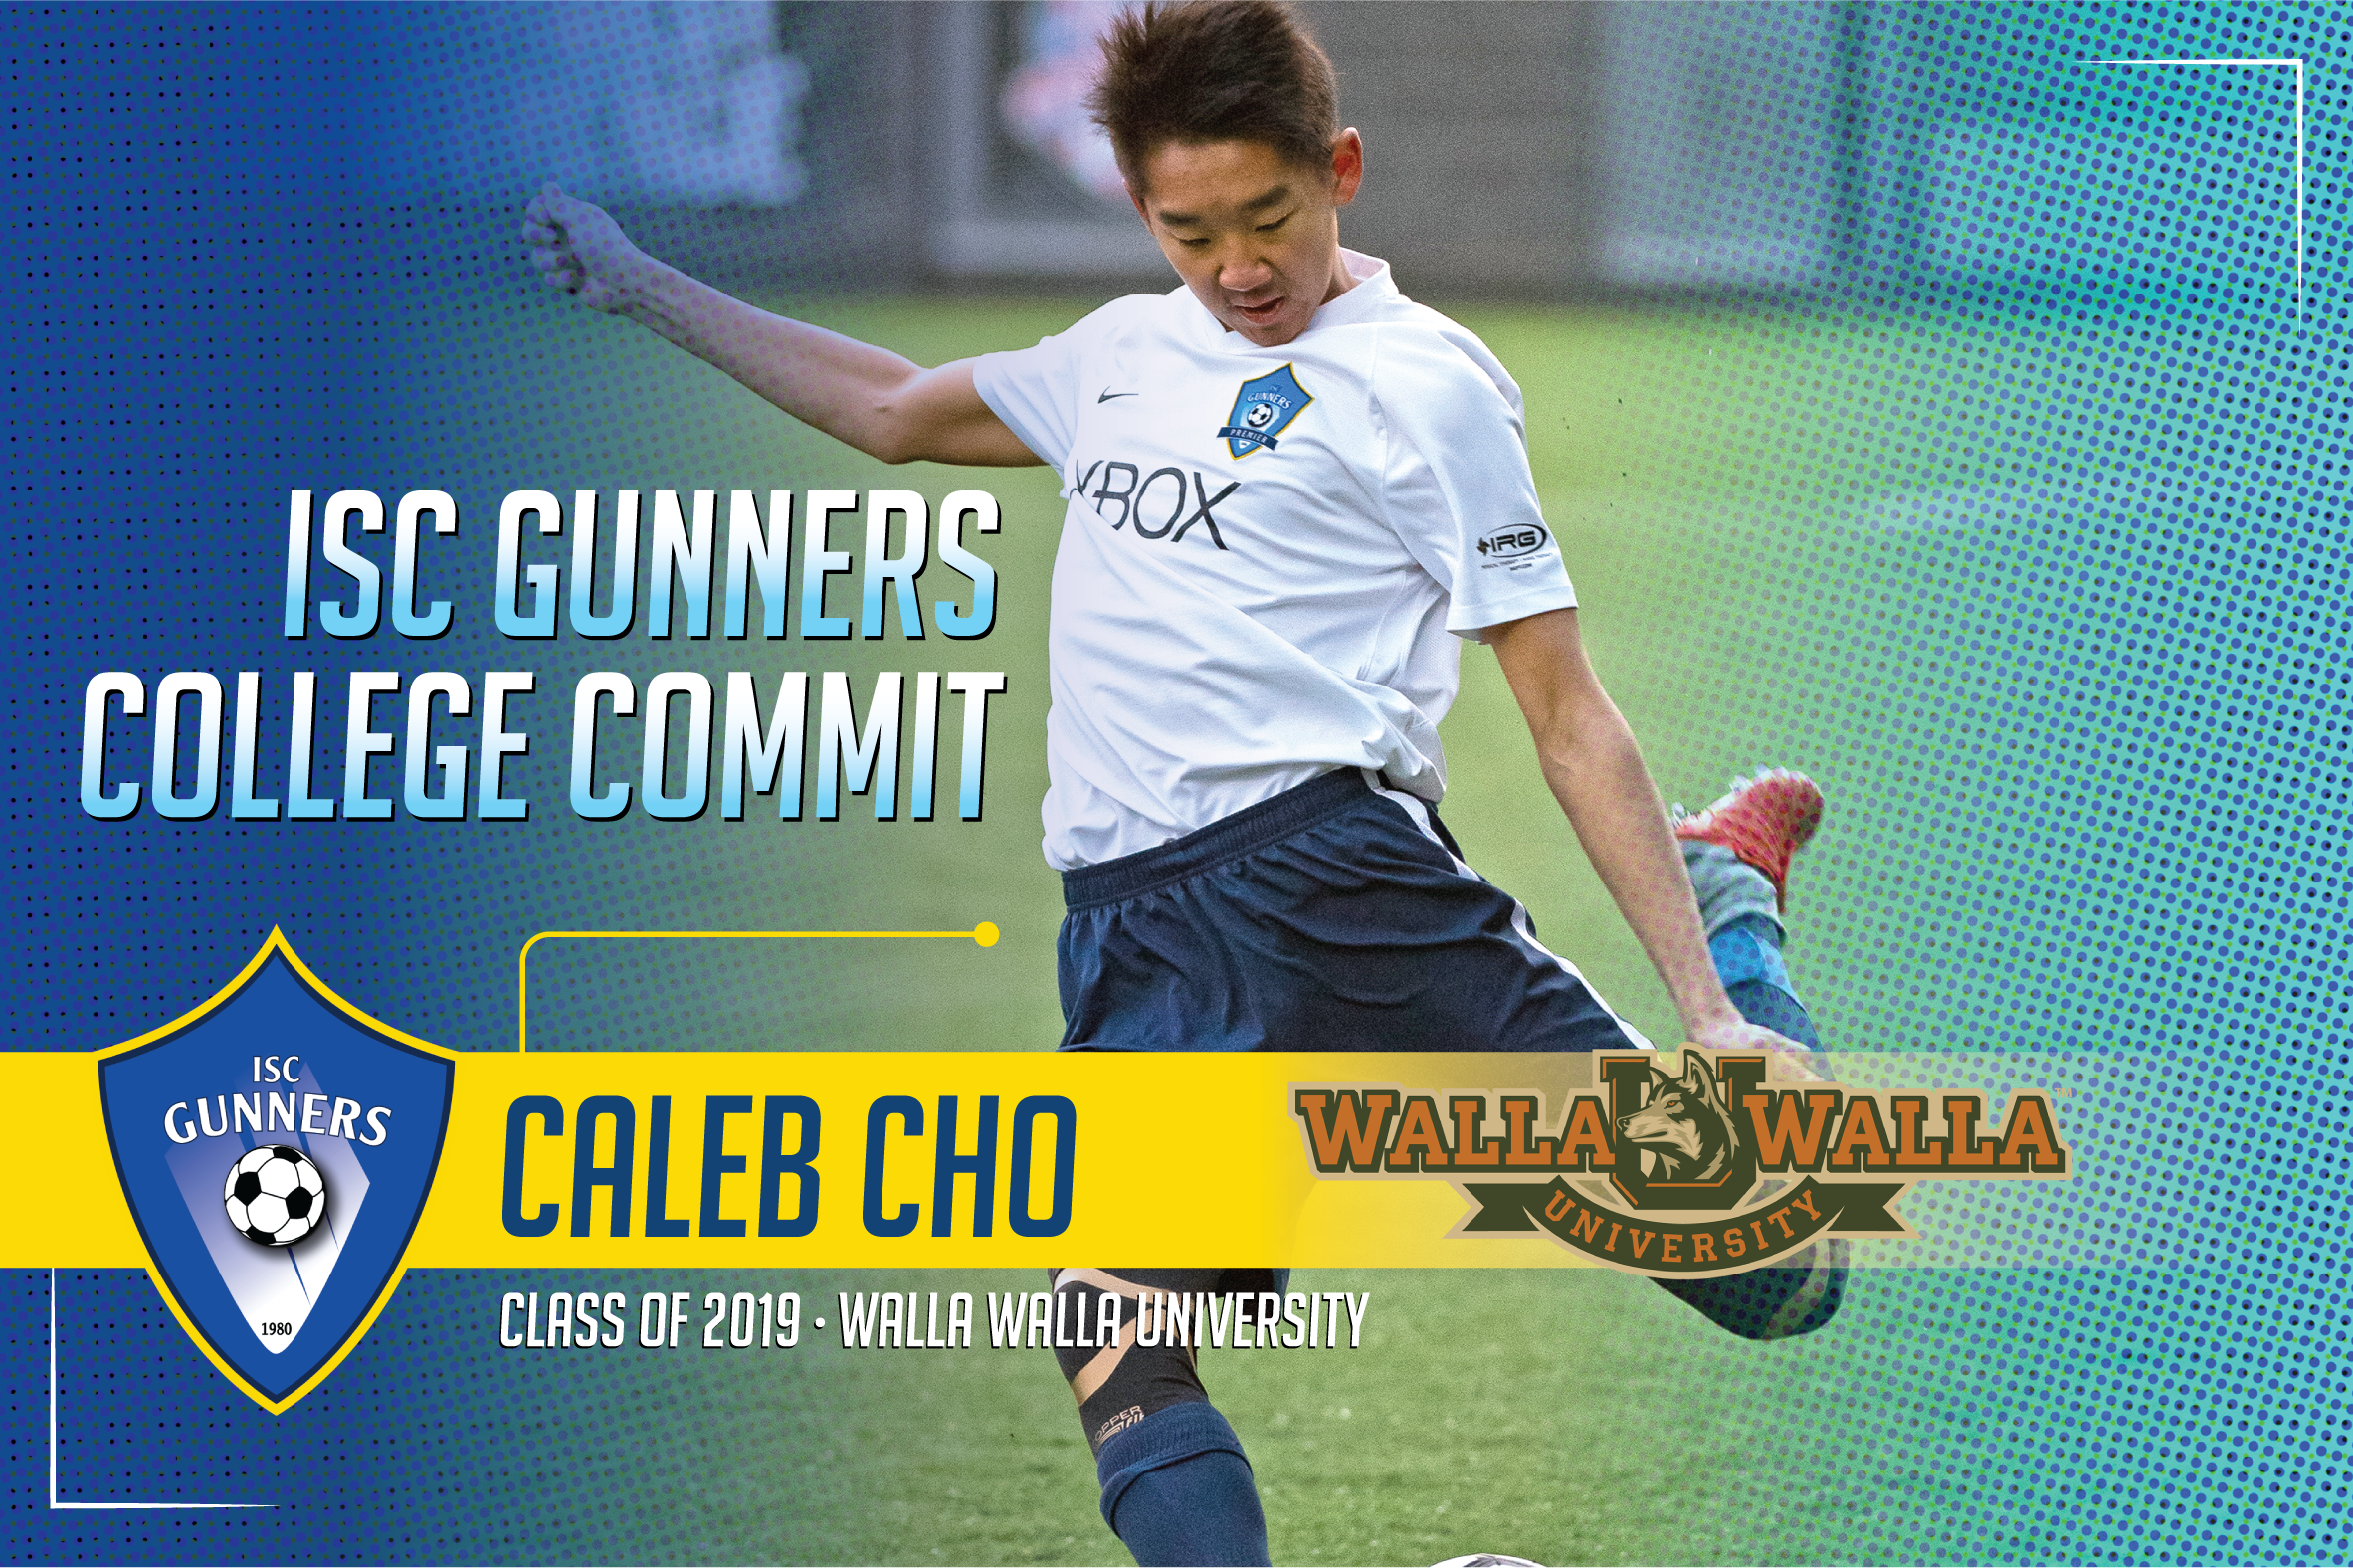 ISC Gunners College Commitments #3 (Only 1 x Graphic/Flyer)